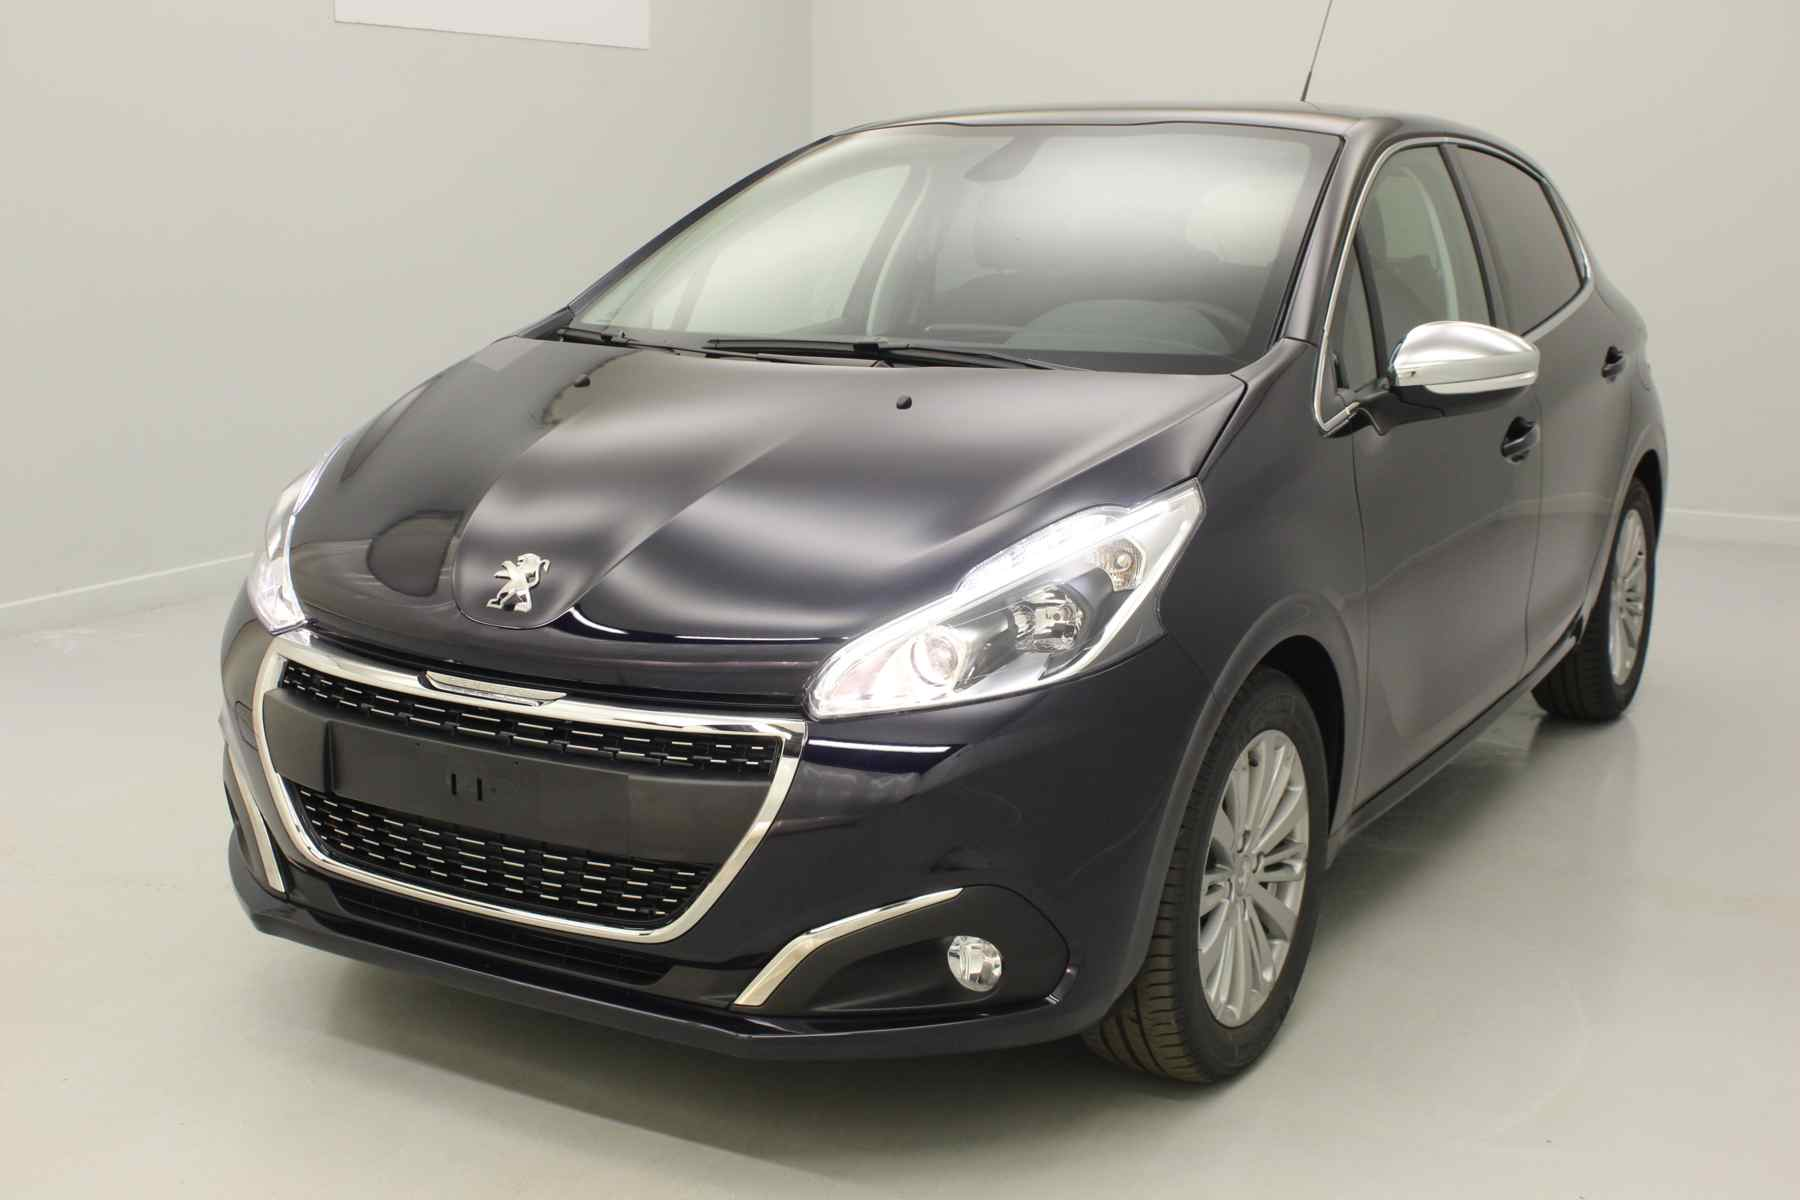 PEUGEOT 208 1.2 PureTech 82ch BVM5 Allure Dark Blue + Navigation + Roue de secours + Extension de garantie 3 ans avec options